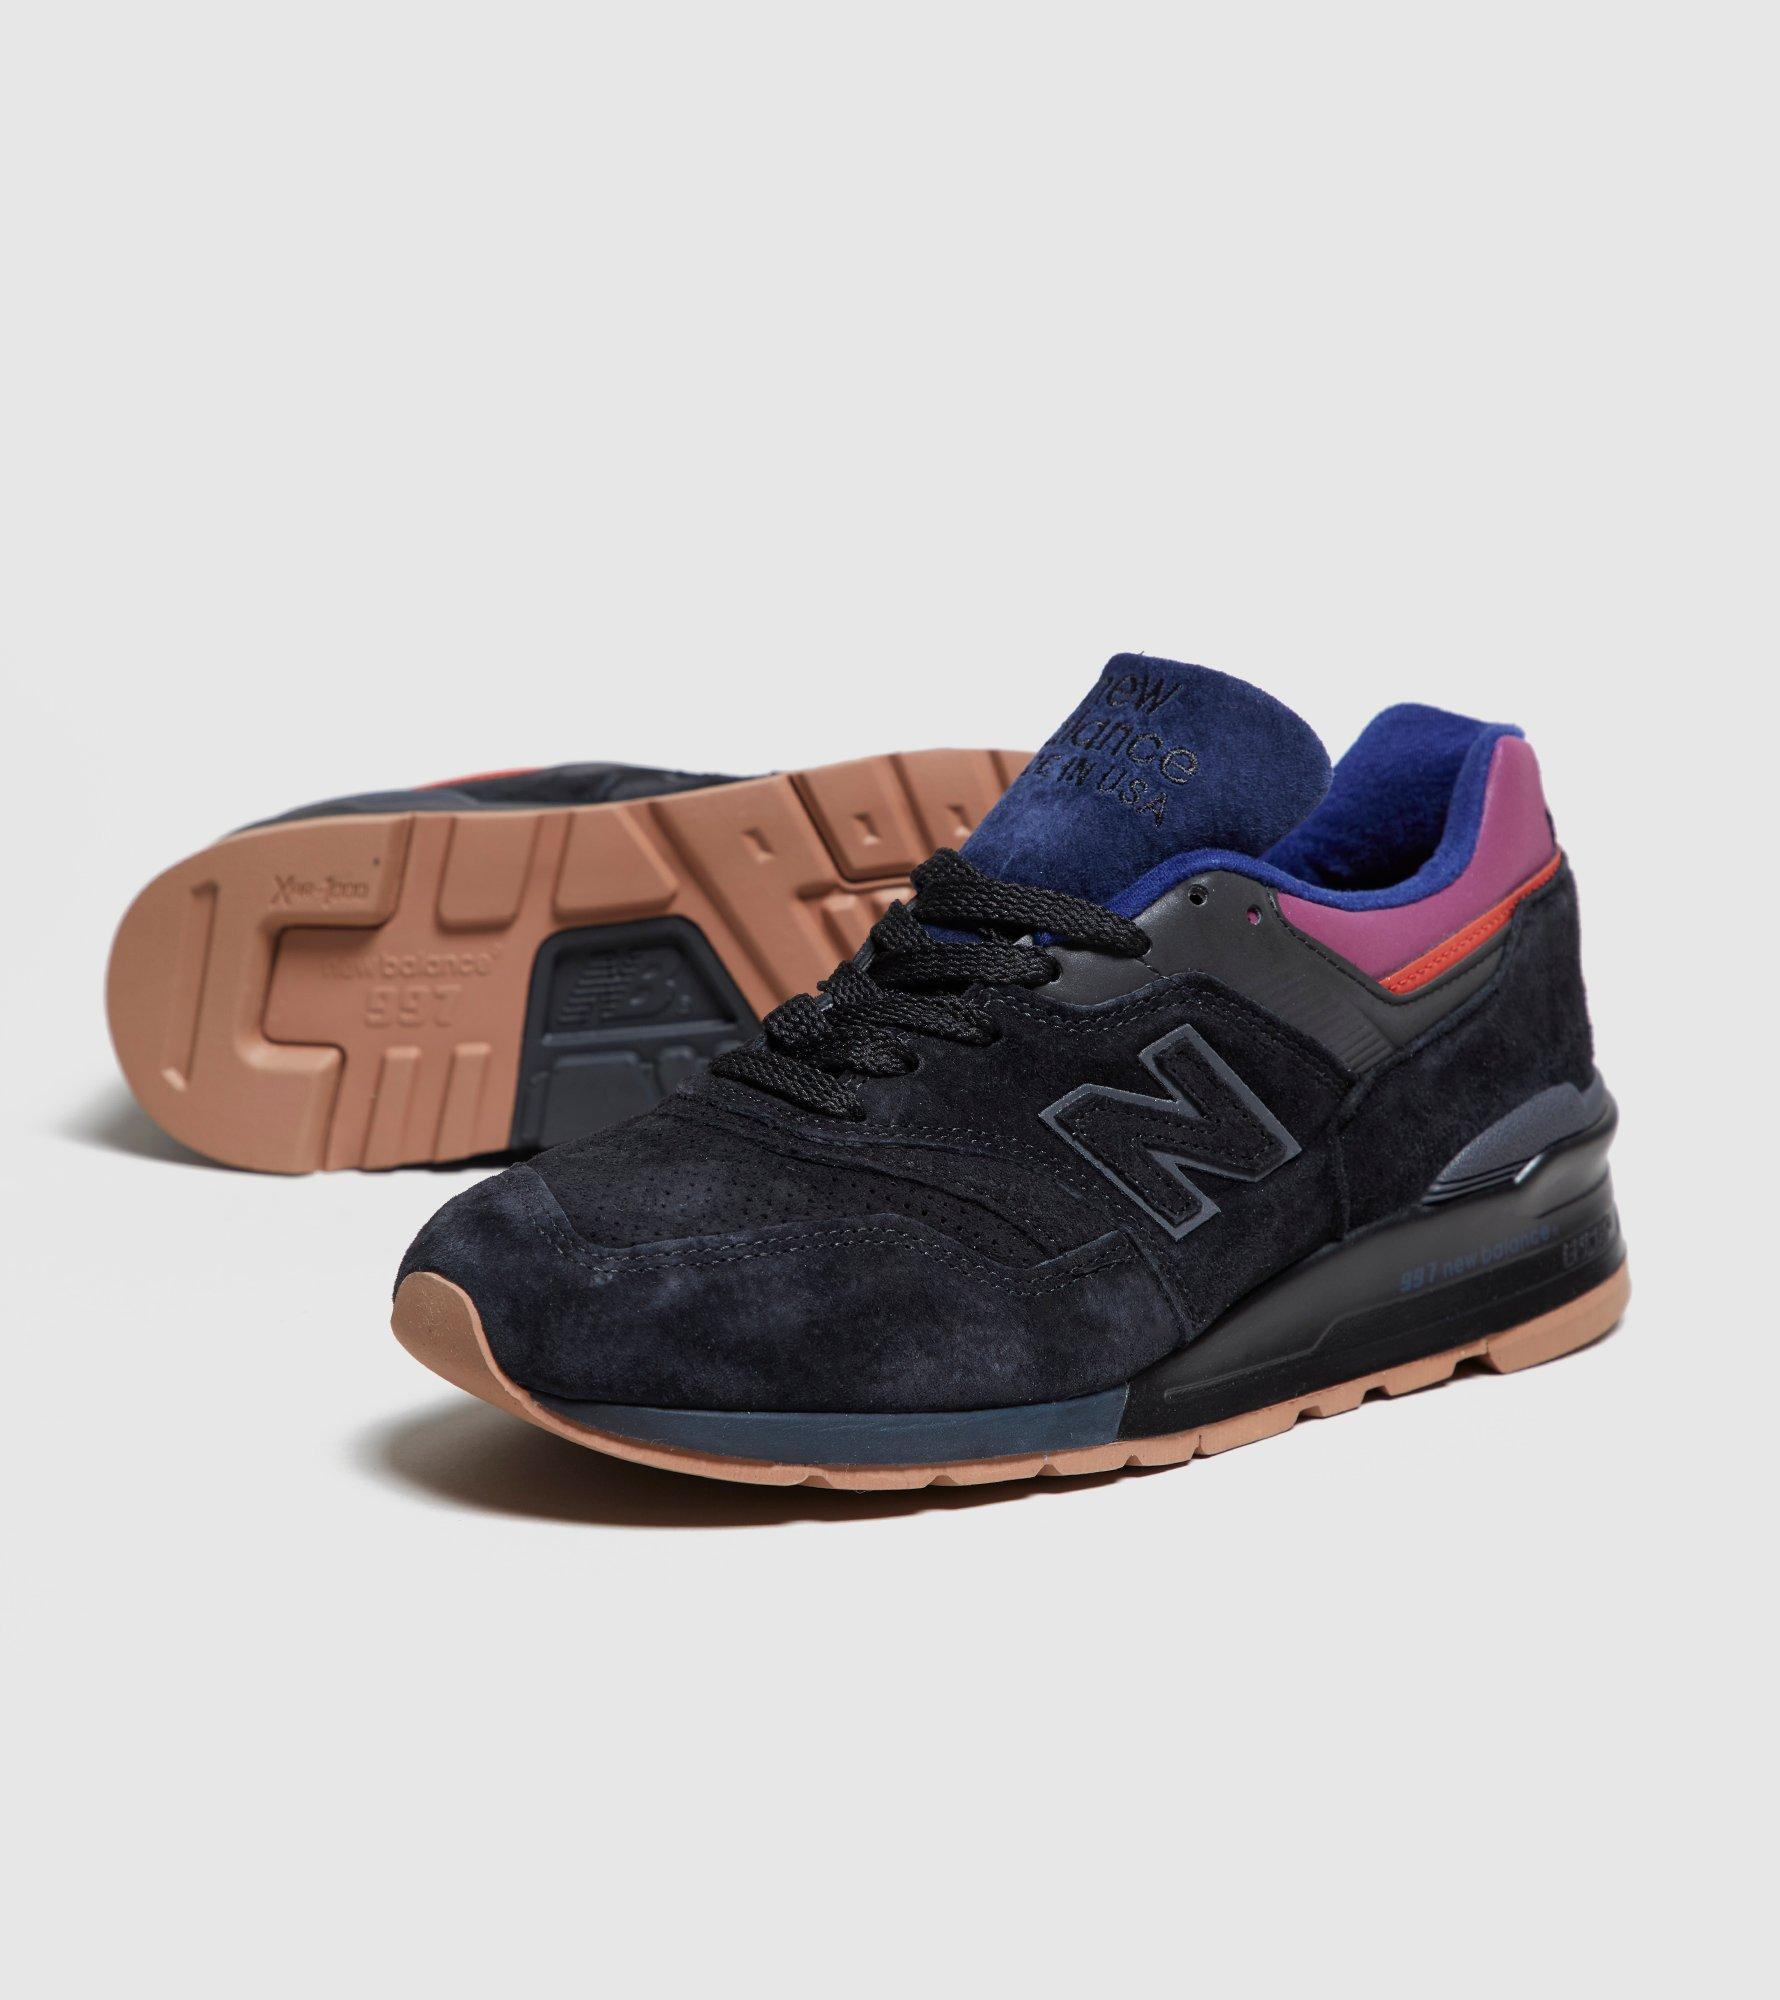 reputable site 7ff3a 78bad New Balance 997 Usa Desert Heat in Blue for Men - Lyst